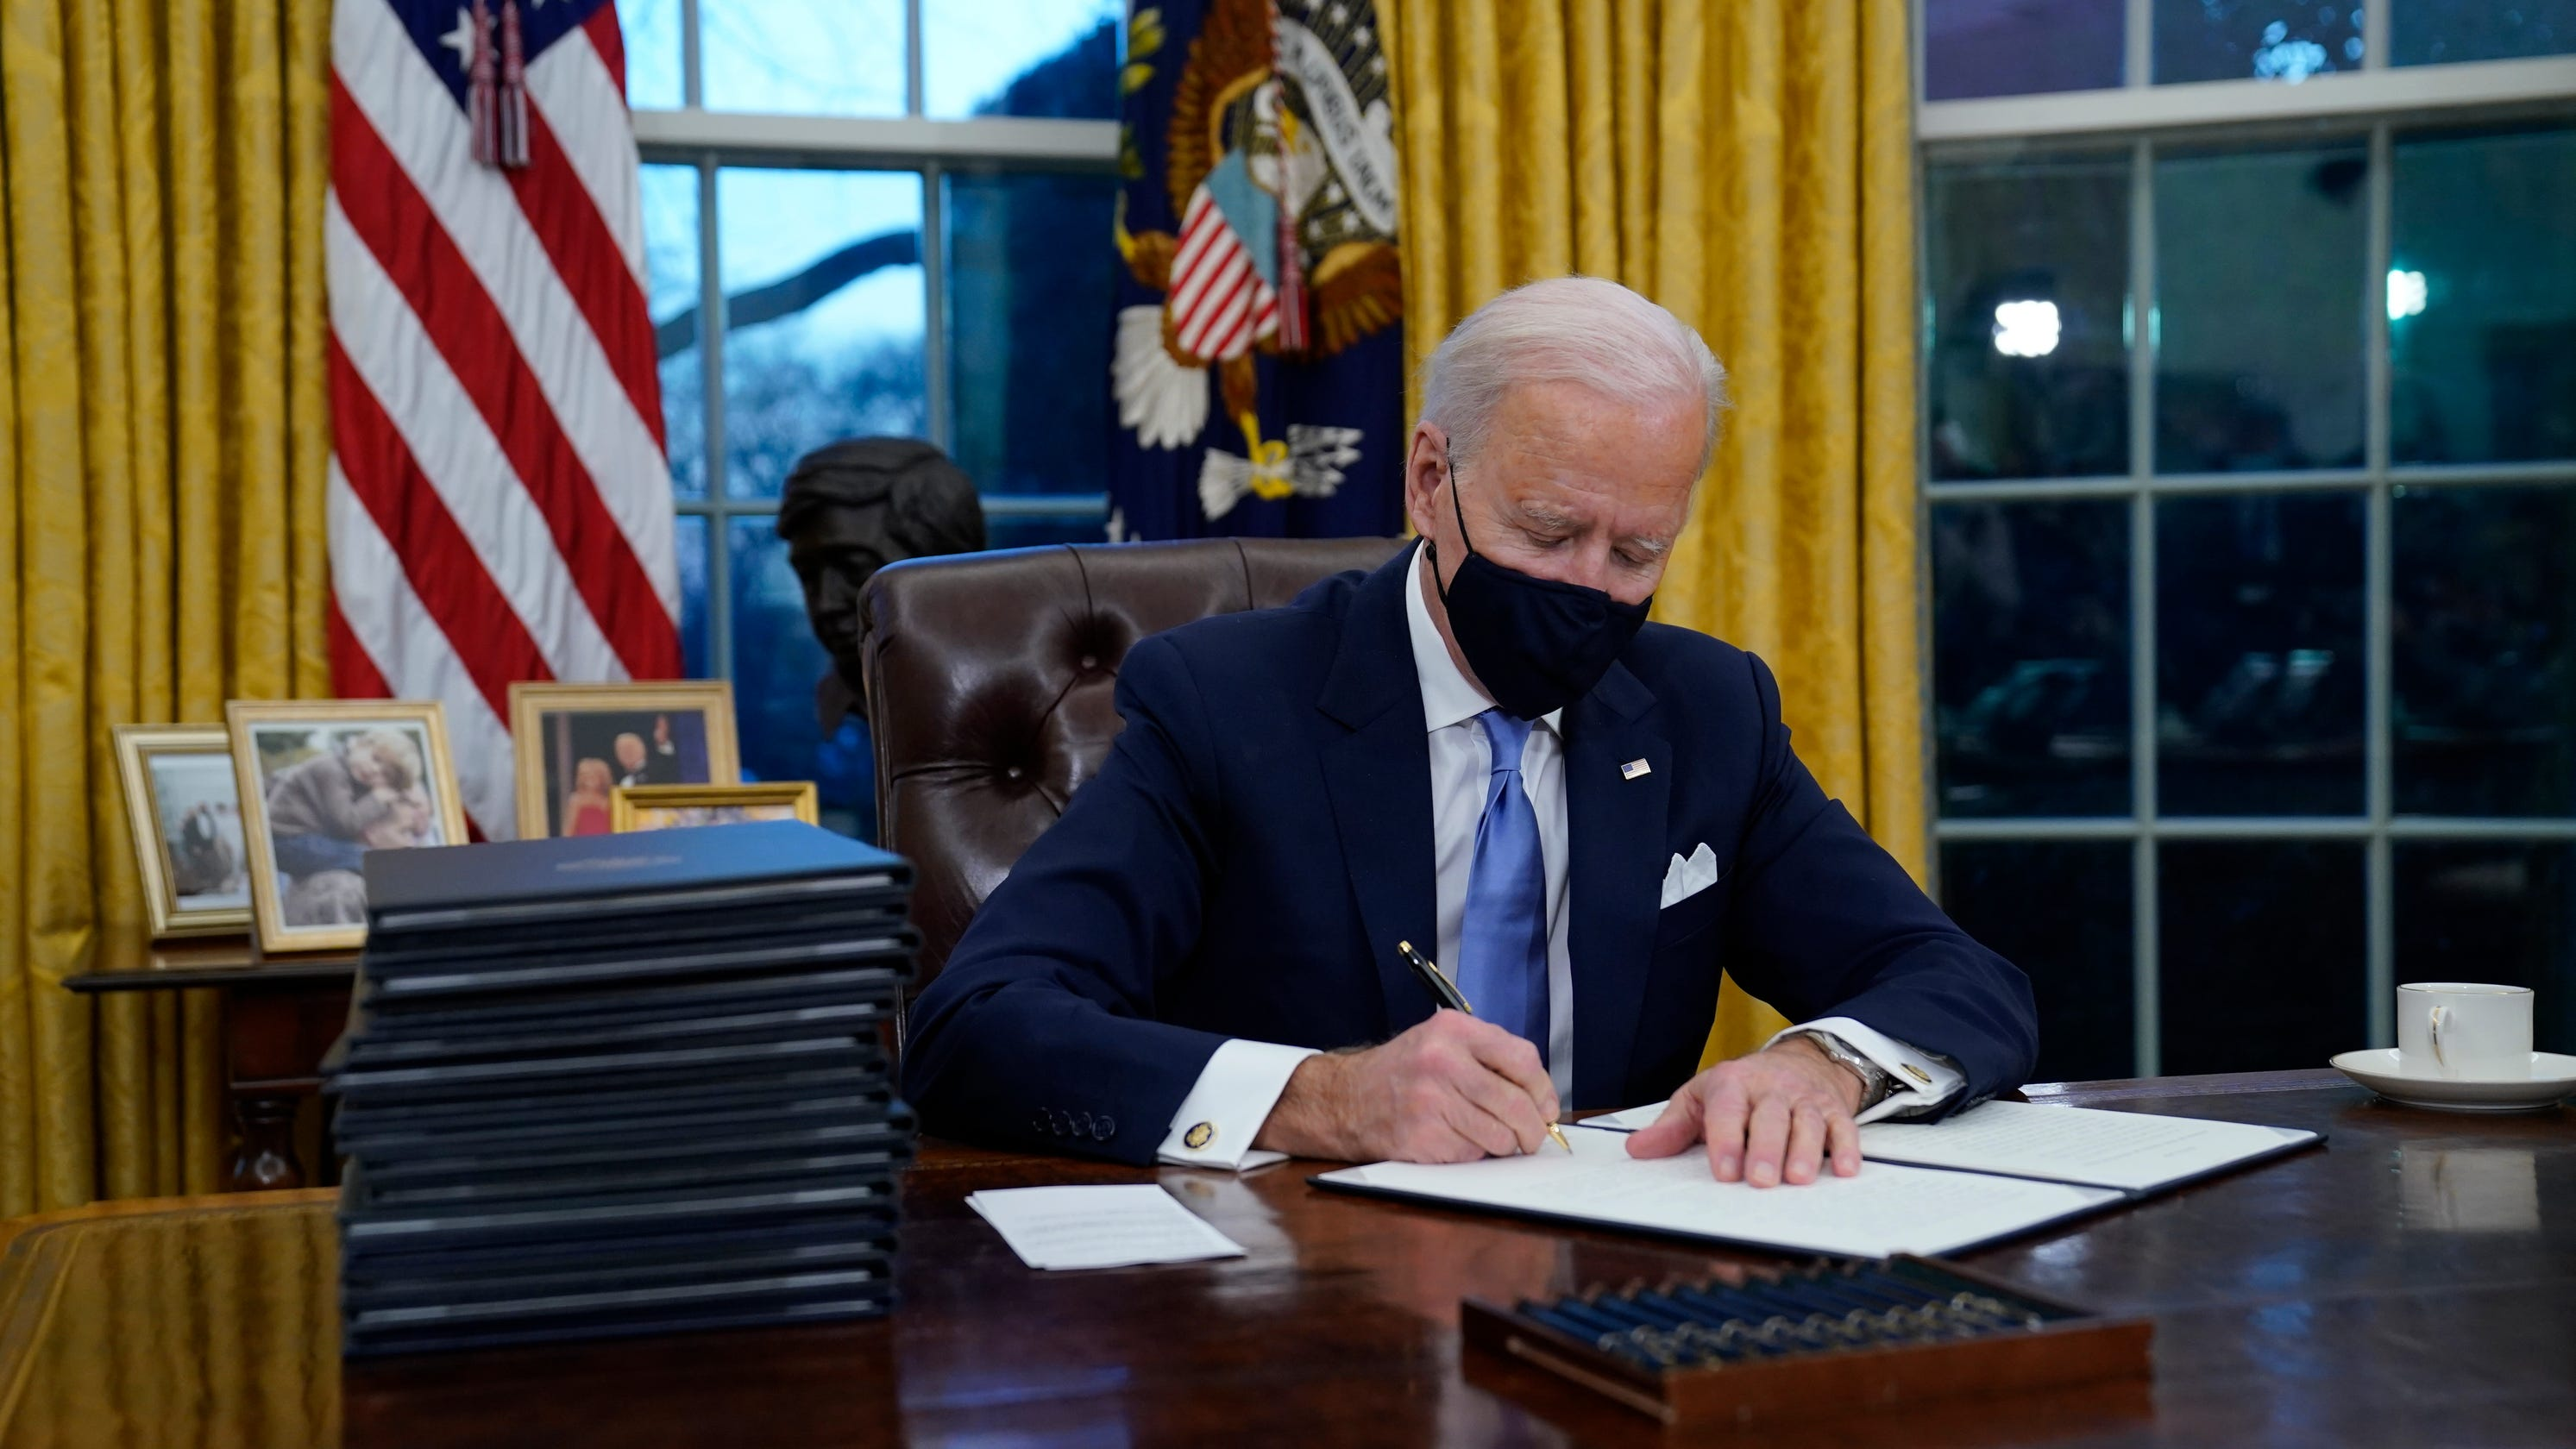 Biden executive order aims to expedite stimulus payments for 8 million recipients